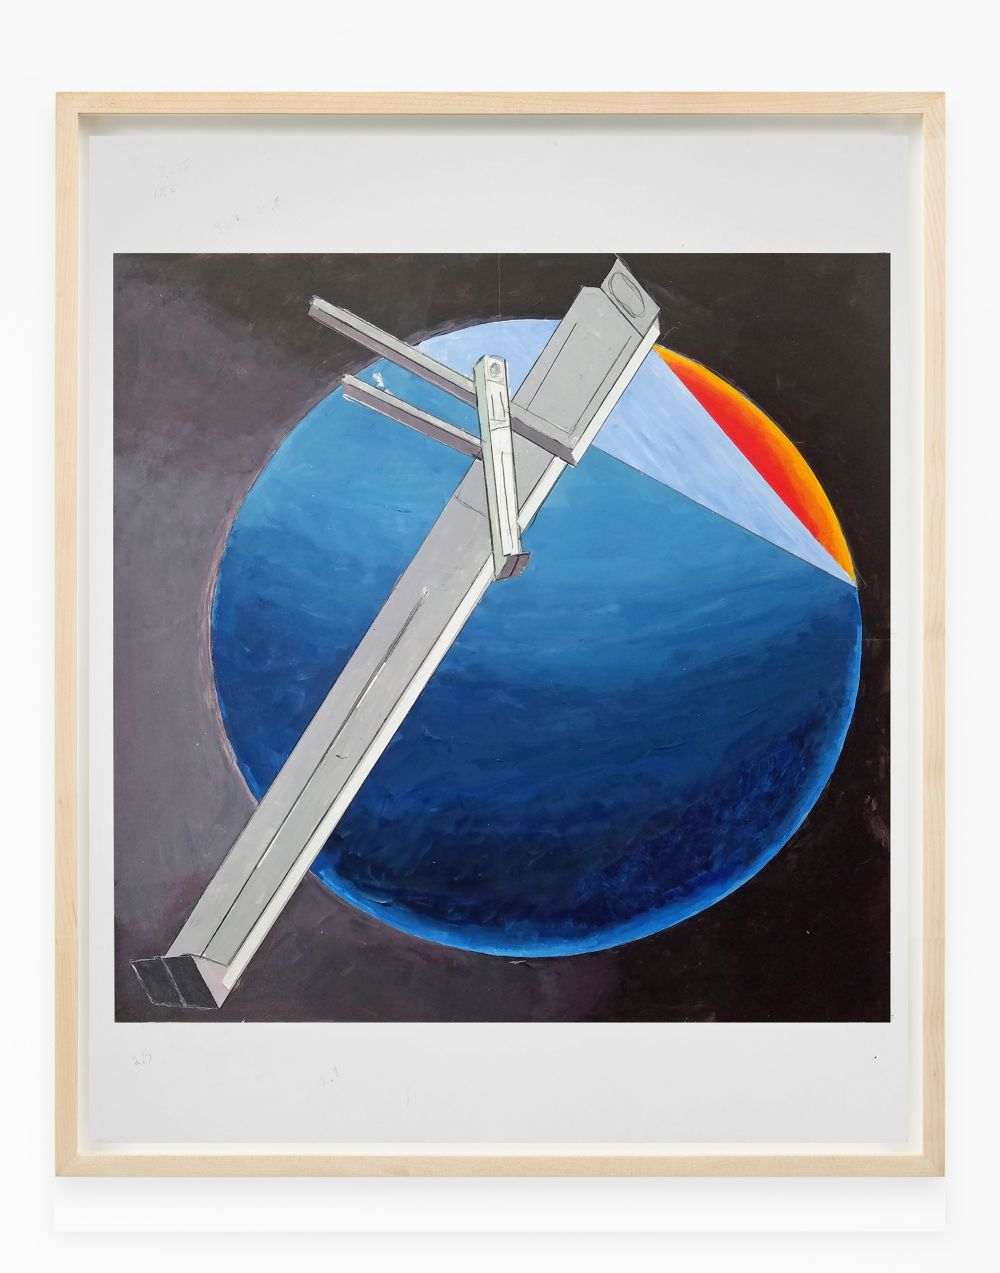 Study for Astronauts, Sunset (after El Lissitzky)